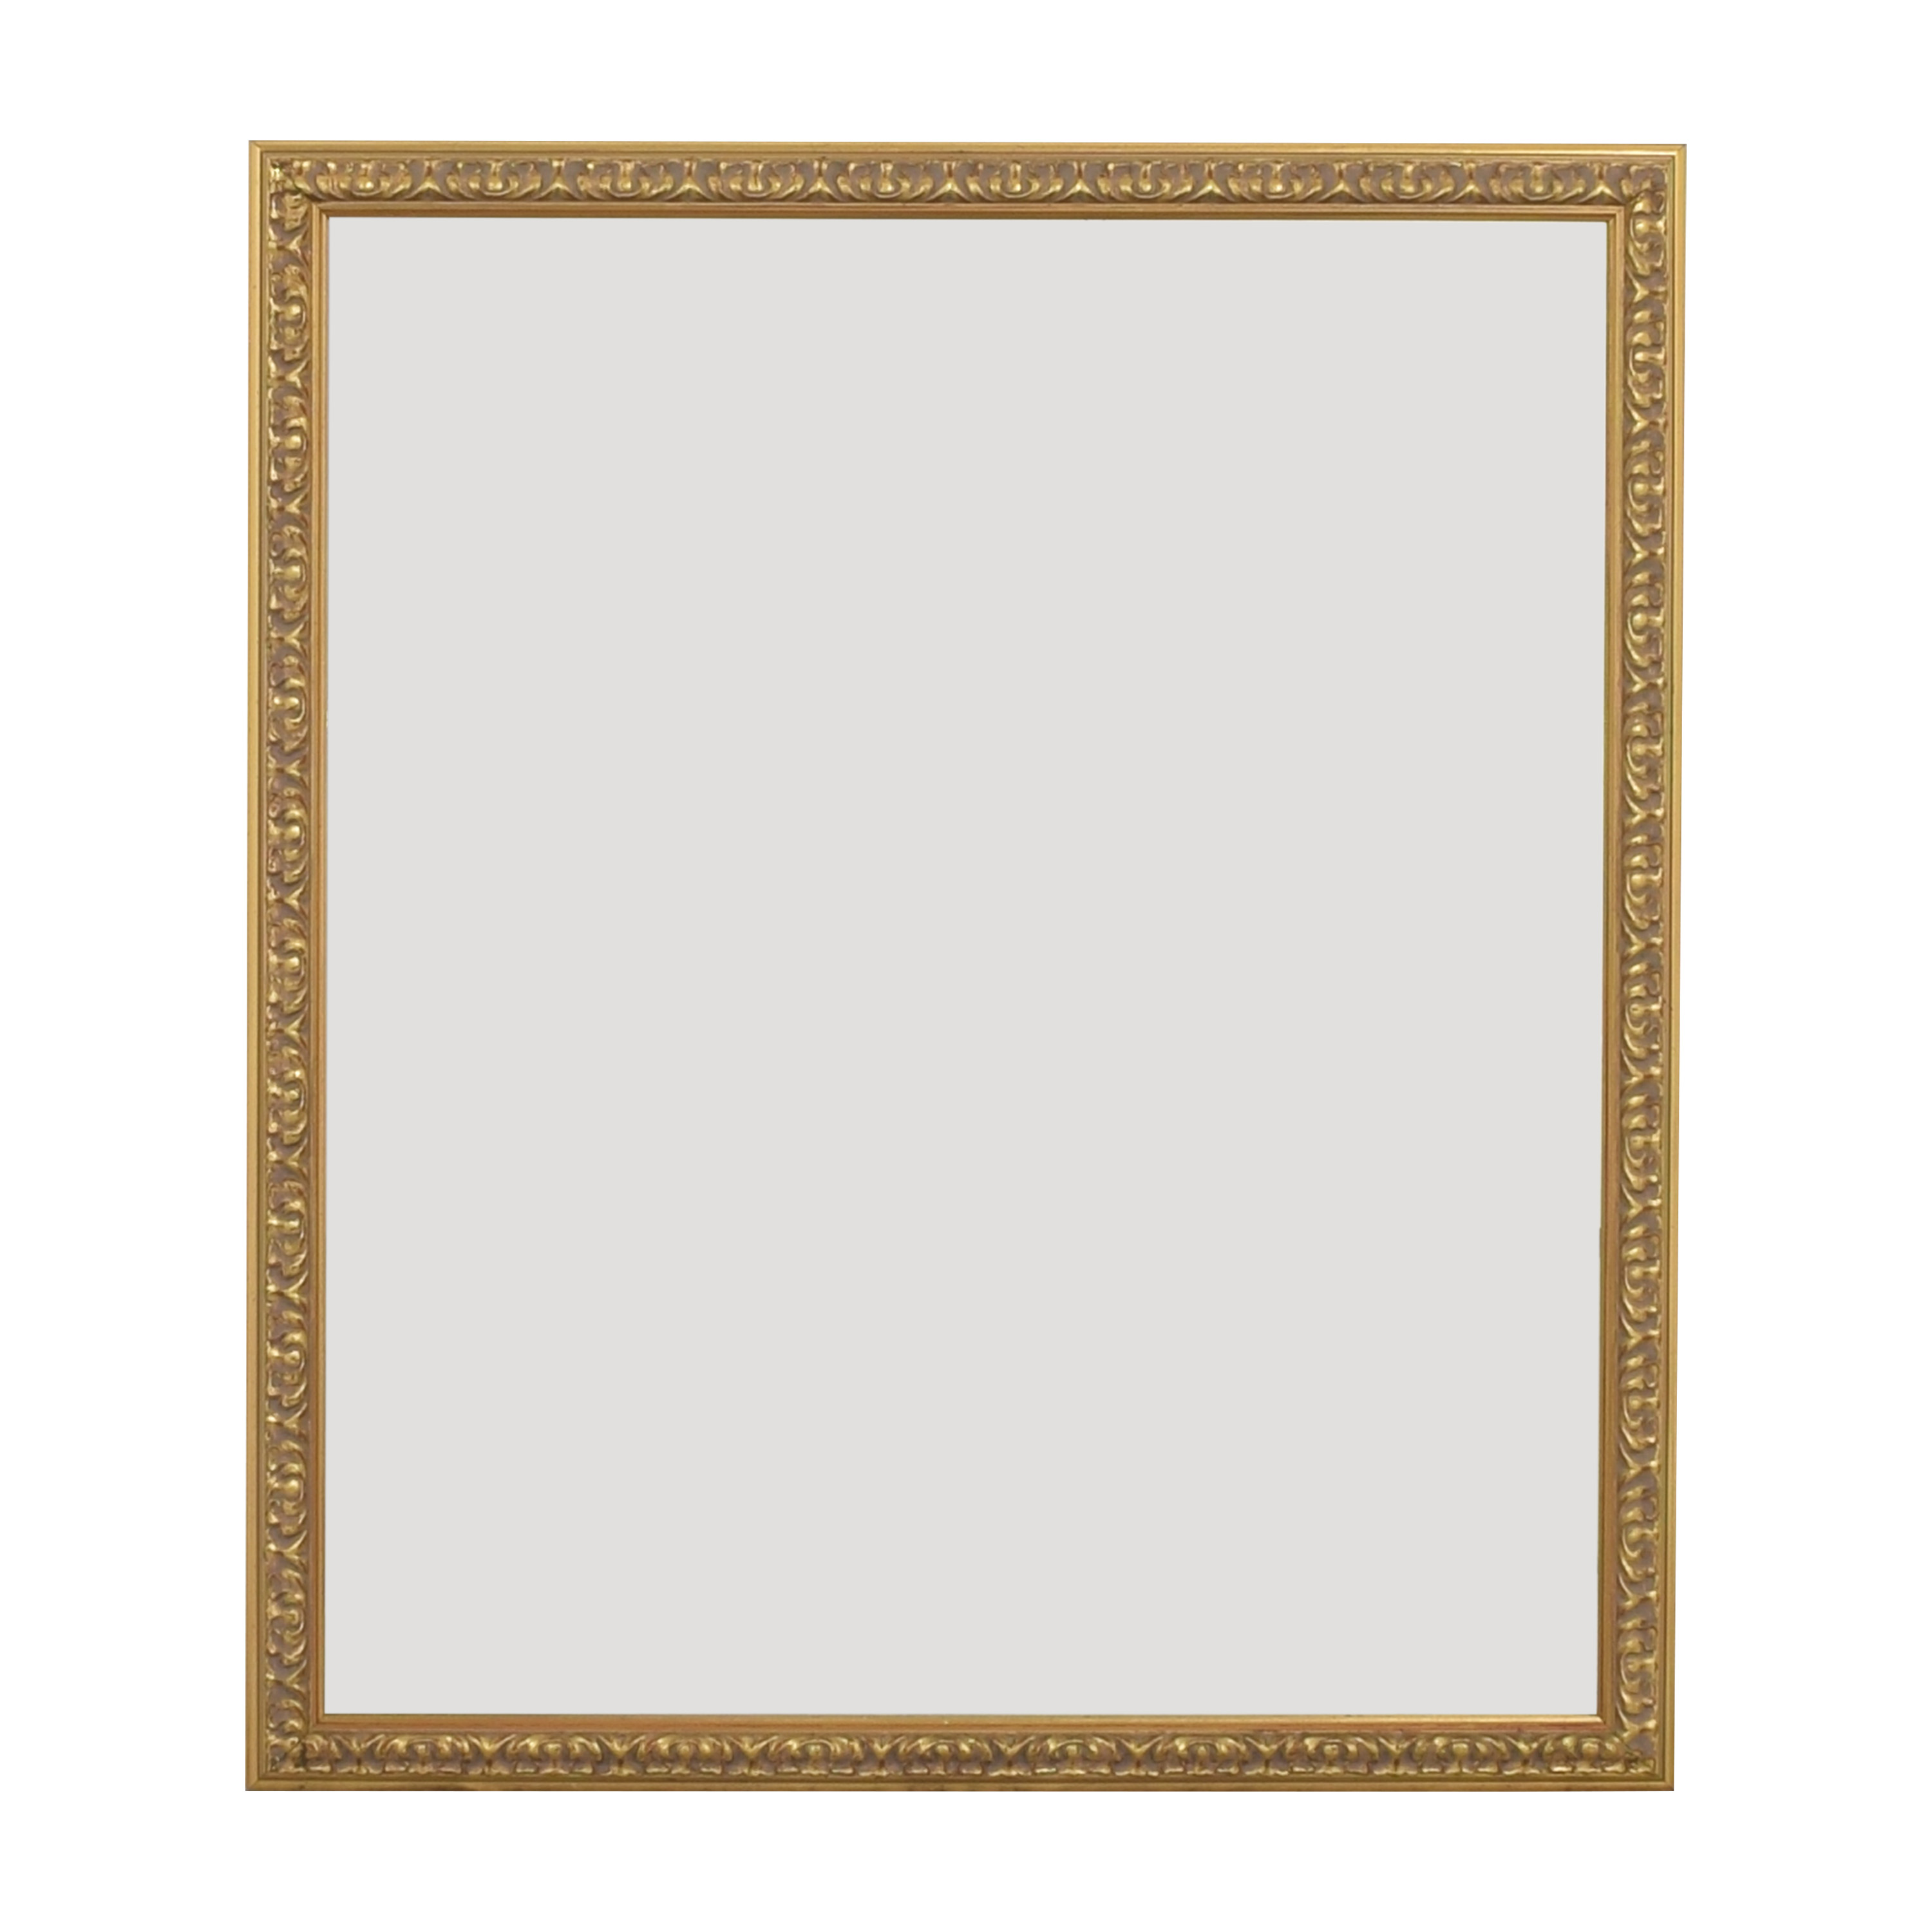 Wall Mirror with Decorative Frame dimensions